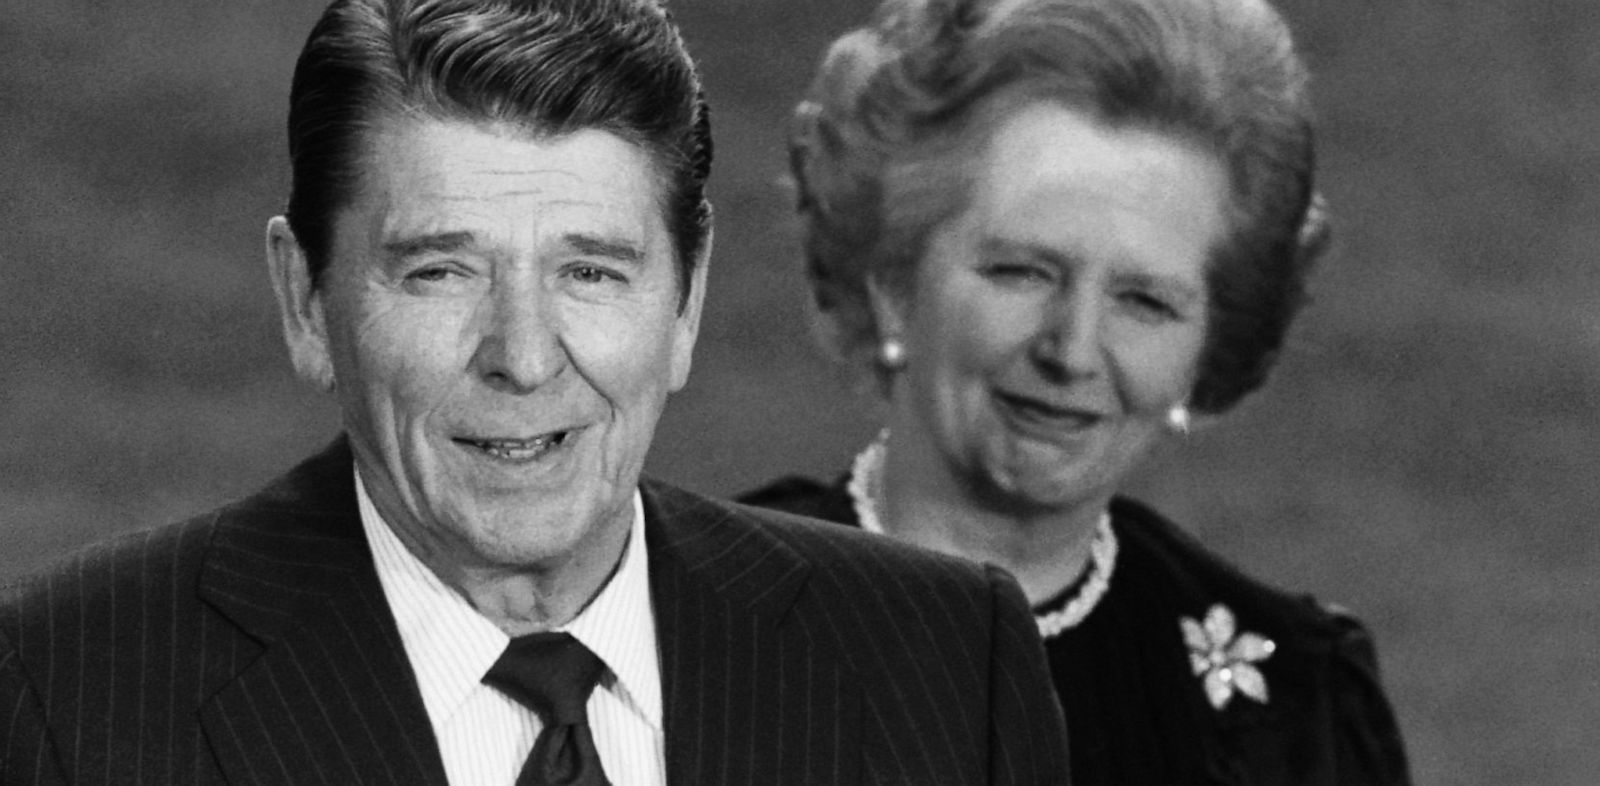 PHOTO: President Ronald Reagan alongside British Prime Minister Margaret Thatcher